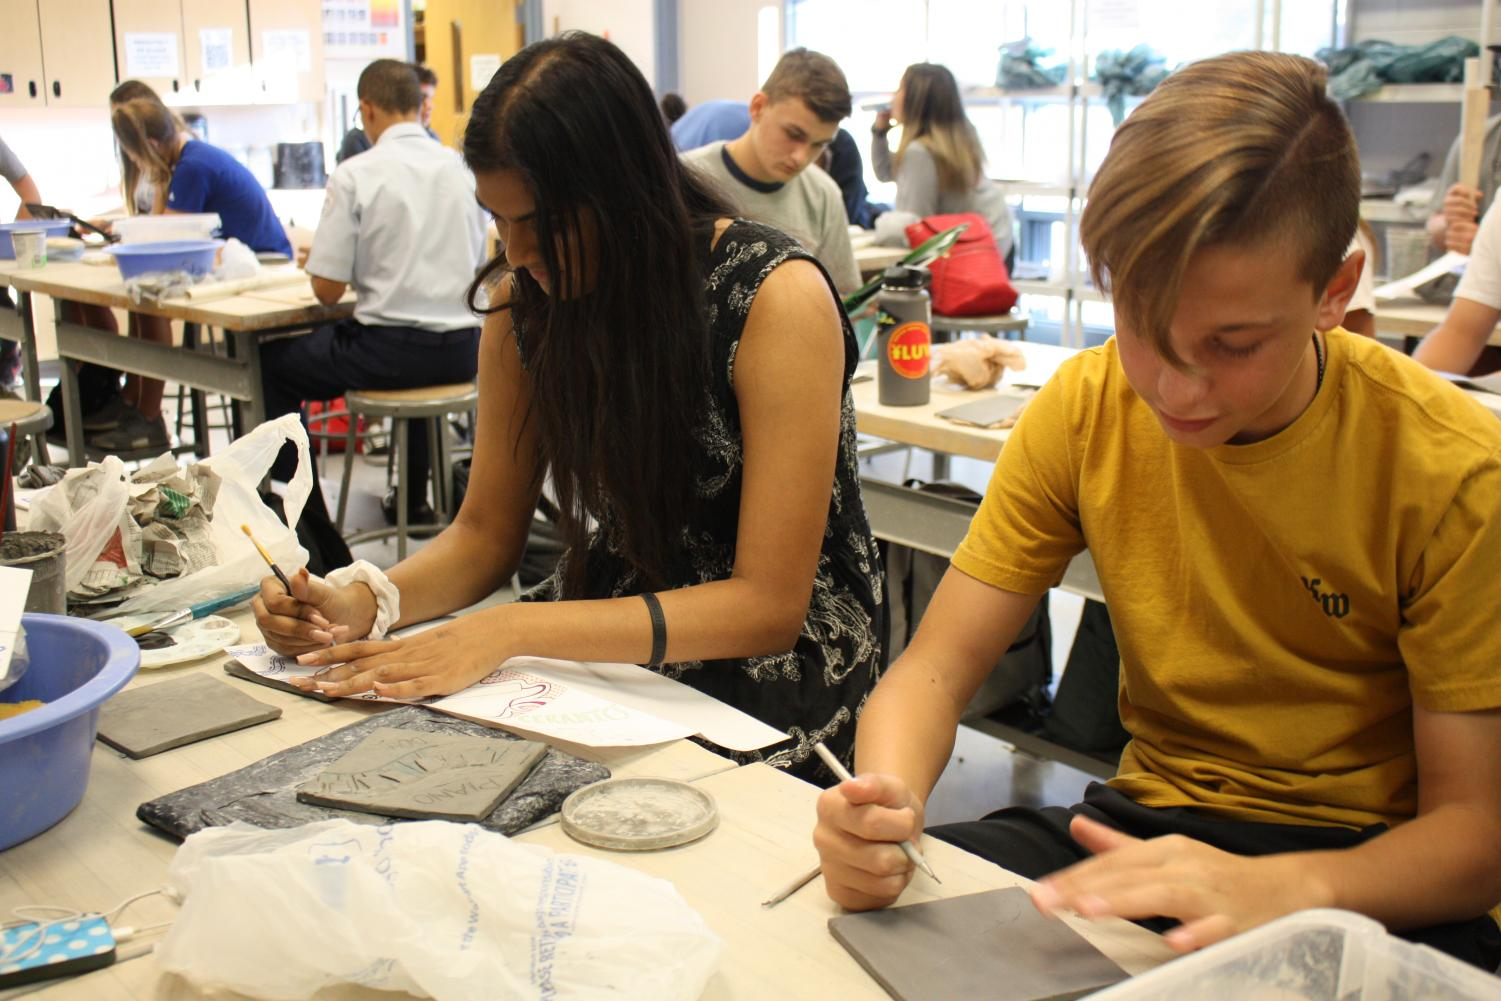 Tanner Valus, sophomore, and Akshara Taikella, senior, carefully etch out their designs on the clay tiles.